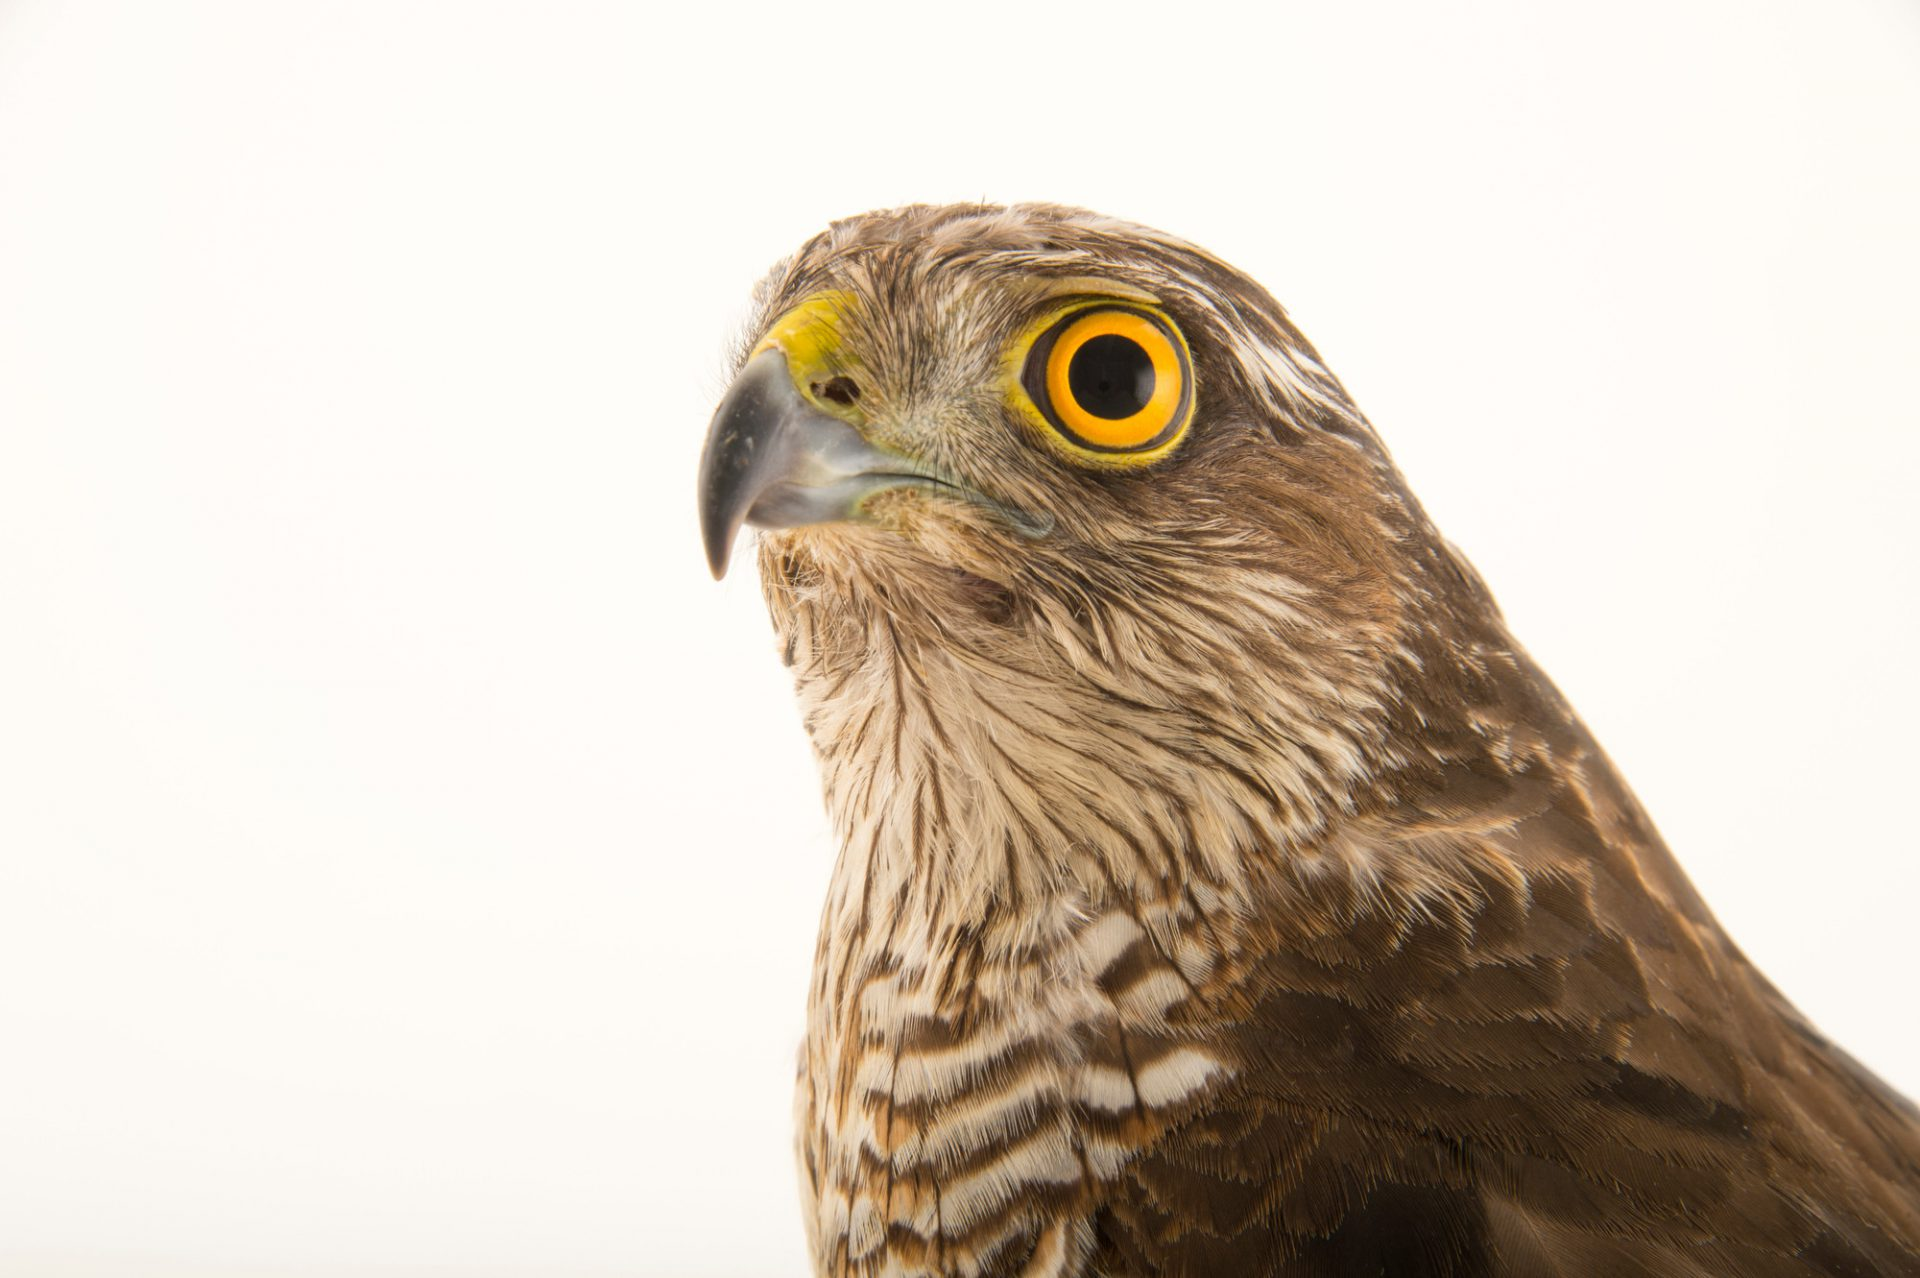 Photo: Eurasian sparrowhawk (Accipiter nisus) at the Budapest Zoo.